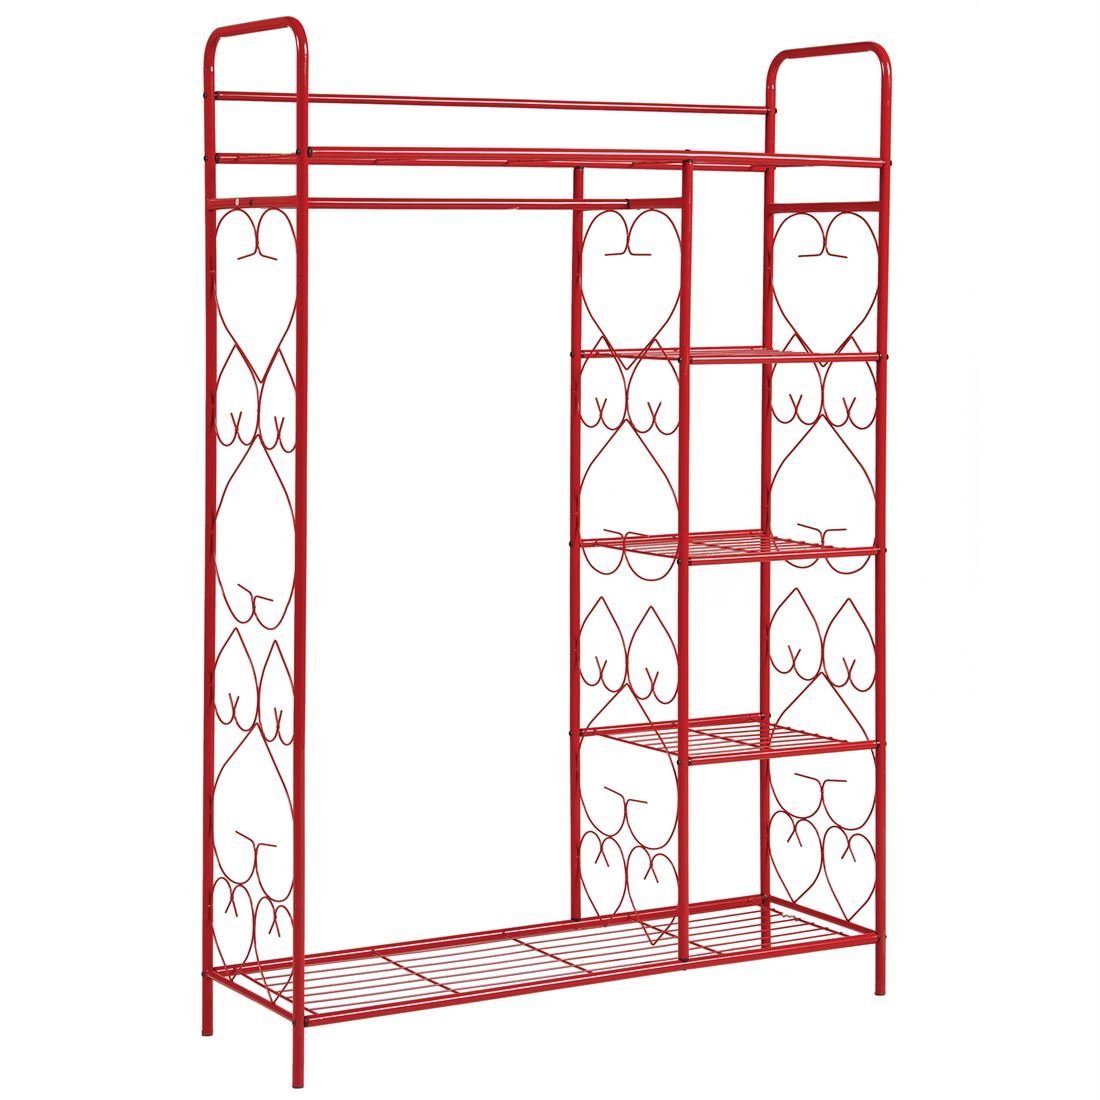 BrylaneHome 5-Tier Metal Closet With Hanging Rod (Black,0)